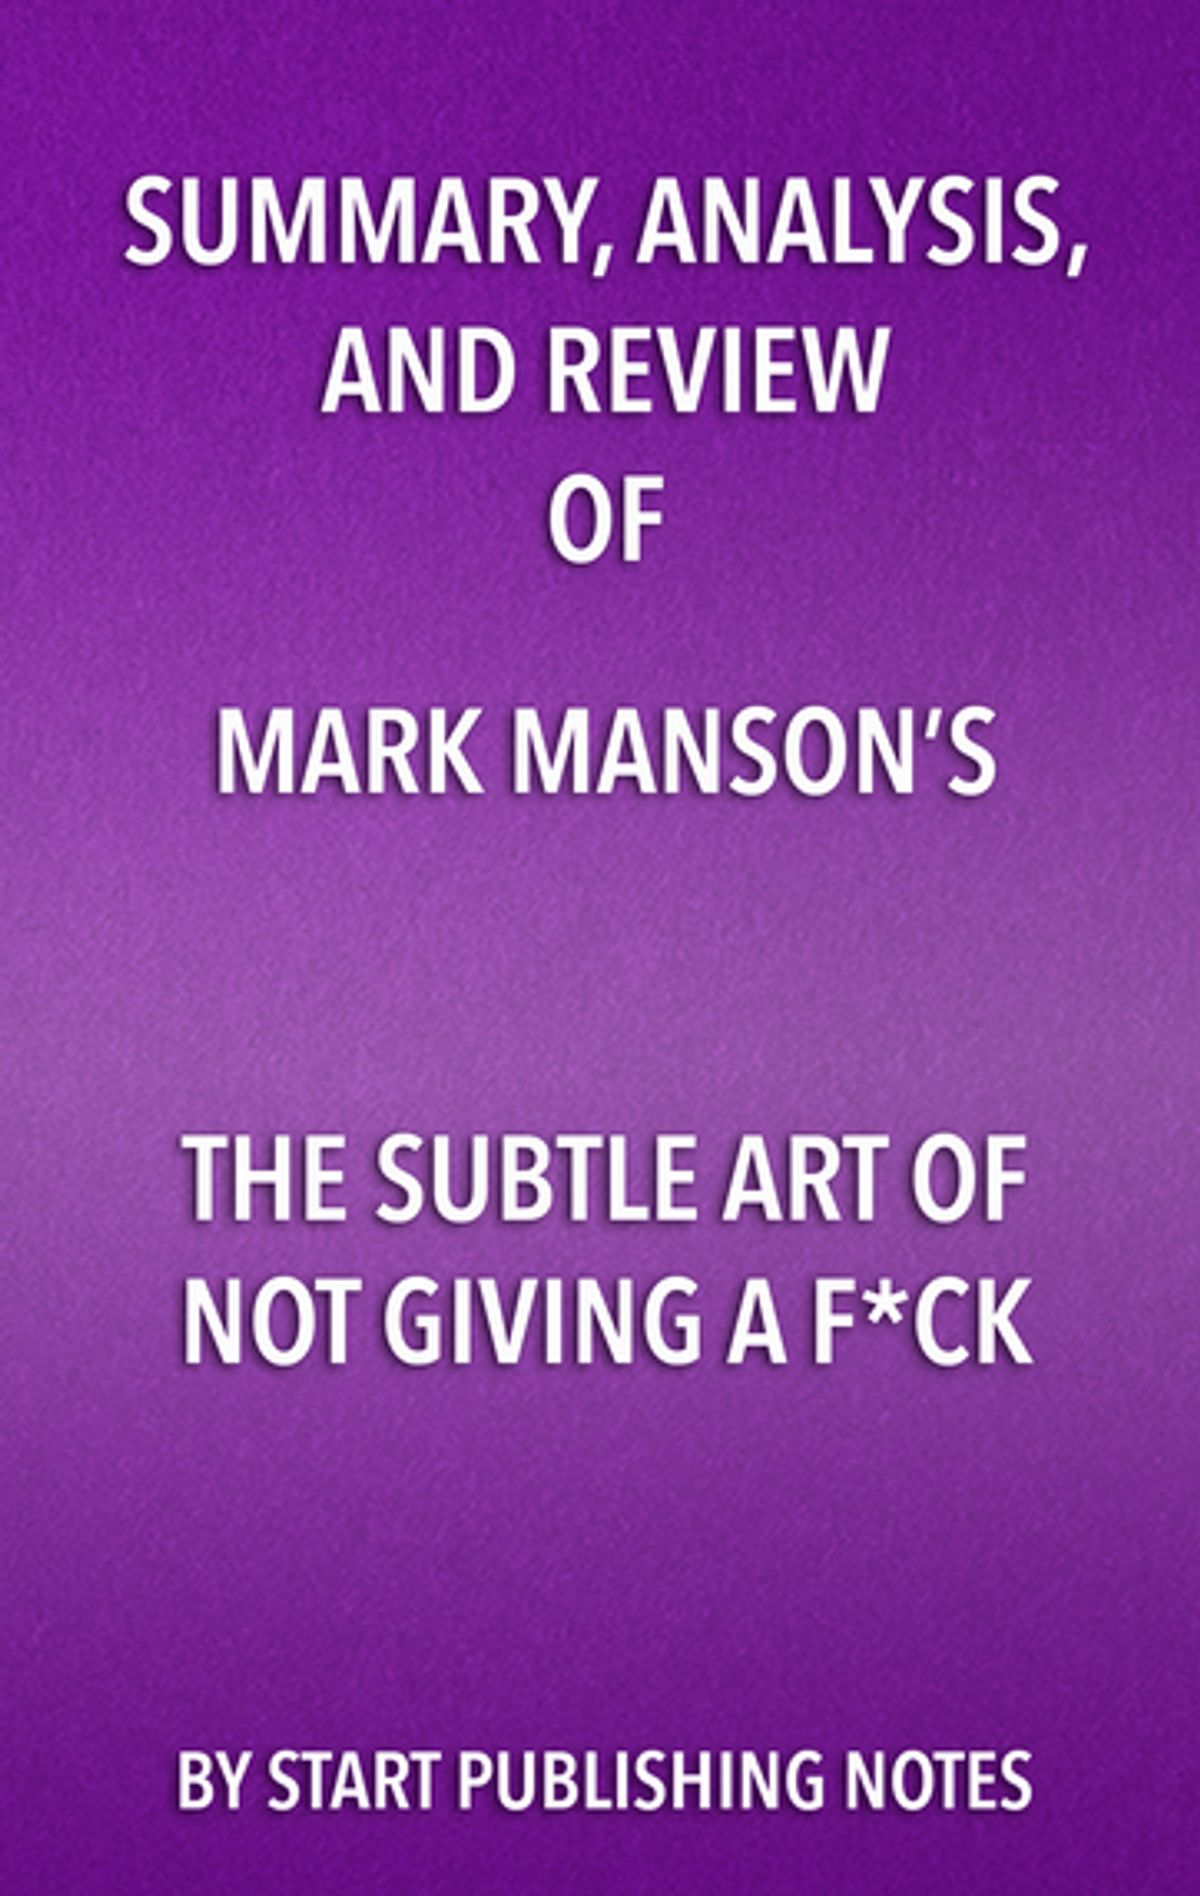 Summary, Analysis, and Review of Mark Manson's The Subtle Art of Not Giving a FuckA Counterintuitive Approach to Living a Good Life by Start Publishing Notes, ISBN: 9781682996782